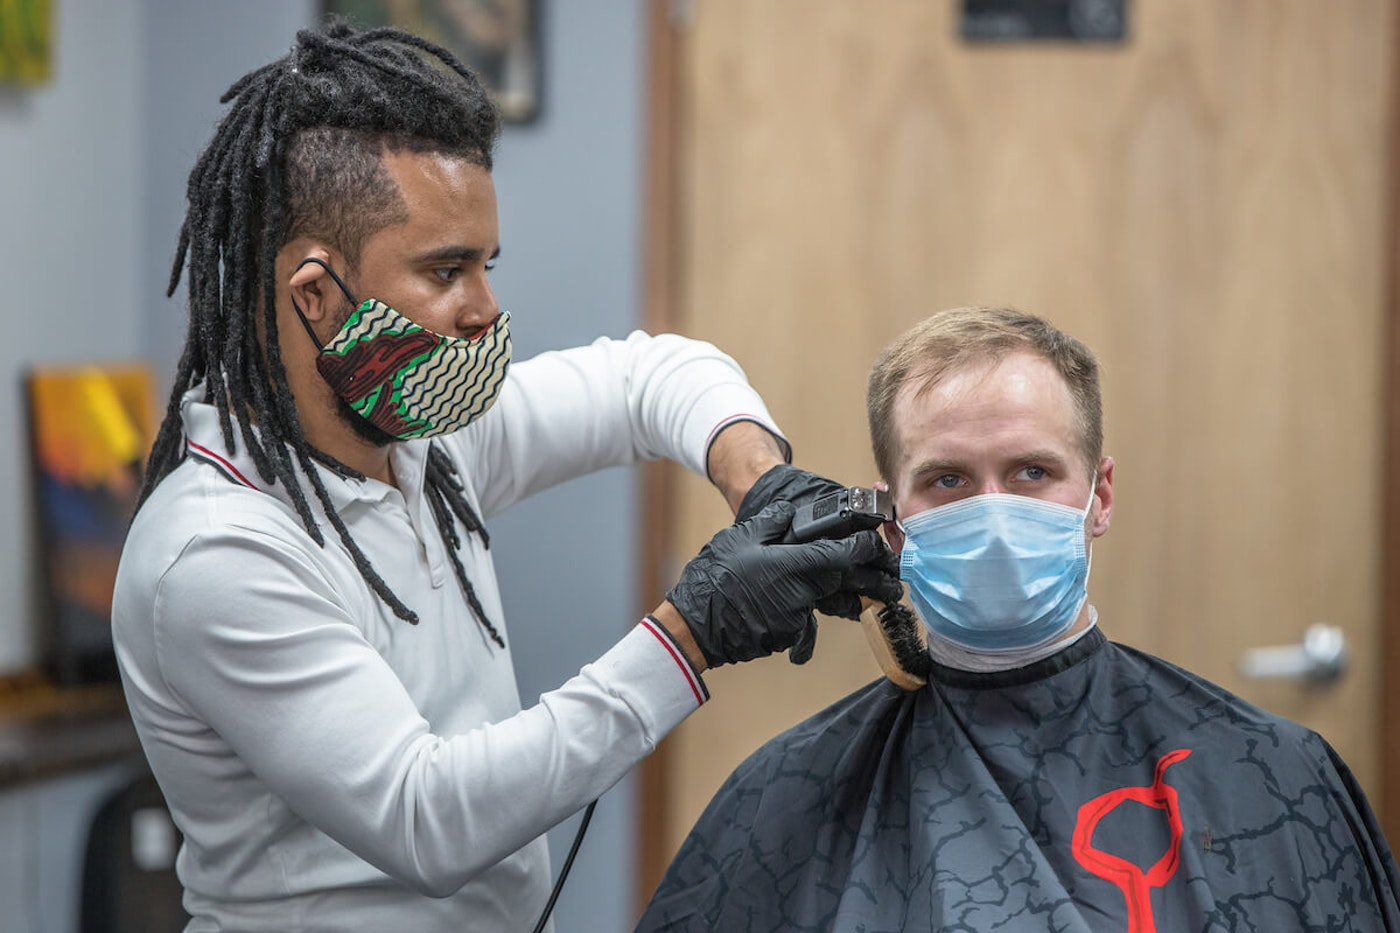 Kevin Rivera, barber at Midwood Barbers in Charlotte, cuts hair in late May while wearing a mask. Masks are required in personal care businesses like salons, but NC is considering a mandatory mask rule in all public spaces. (Photo for Cardinal & Pine by Grant Baldwin)